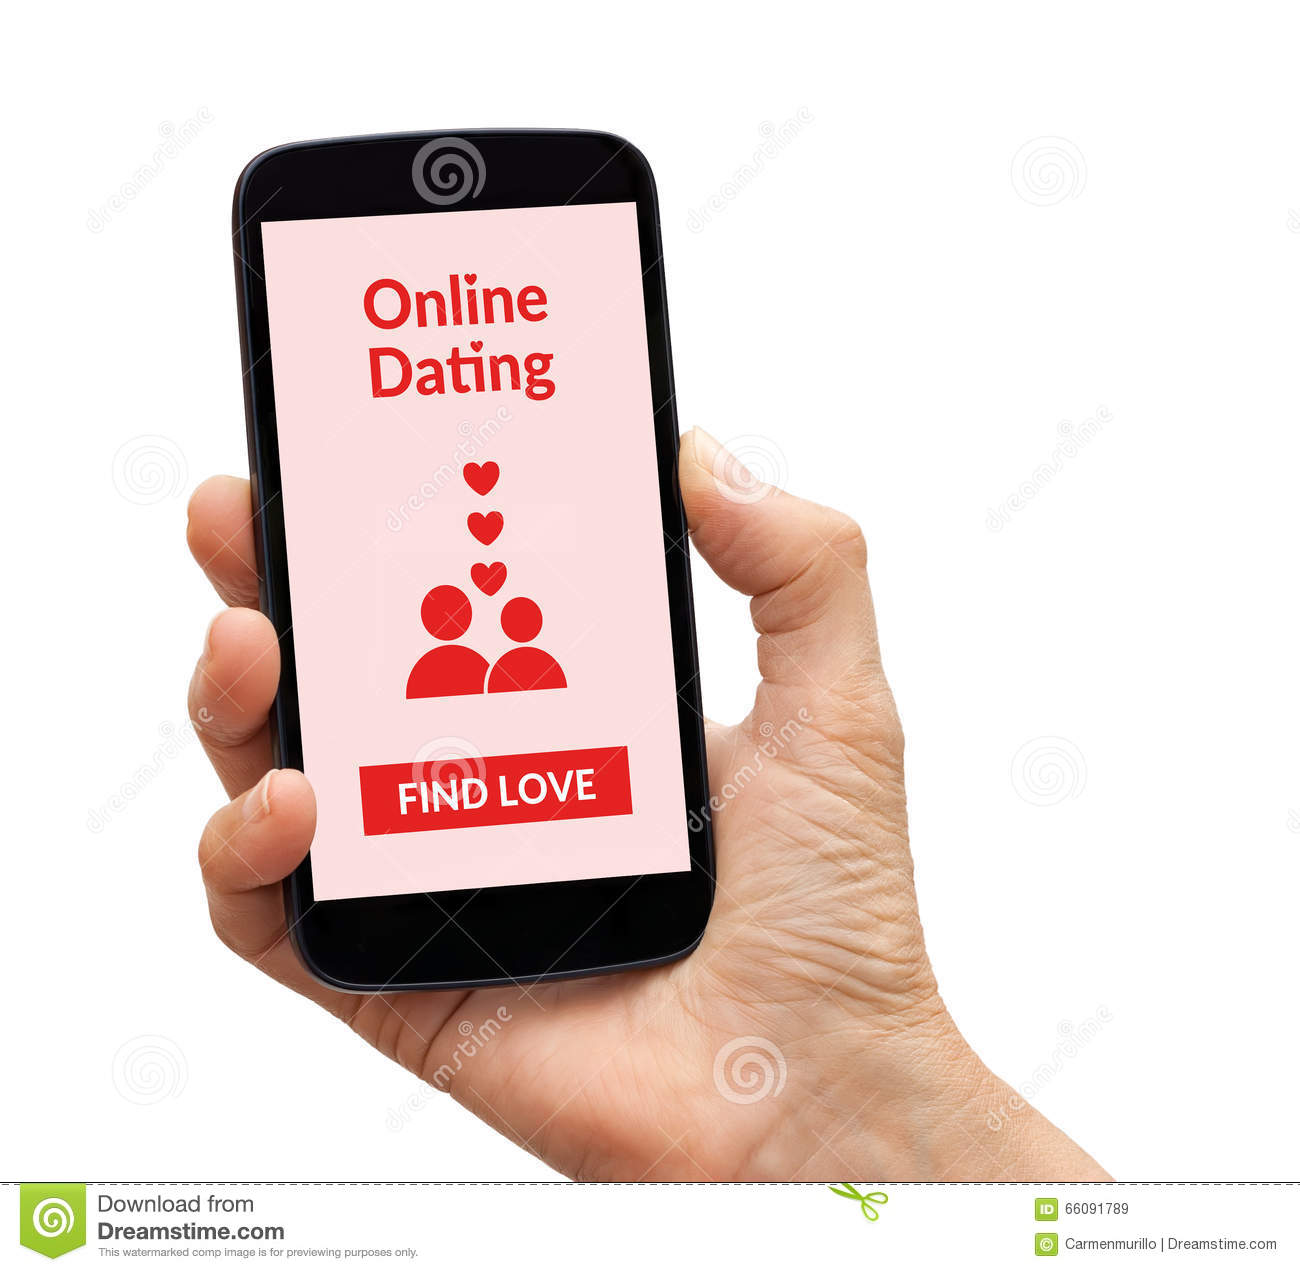 dating ups An online dating site free to join for unintrusive flirting and uncompromising dating with easy-going singles living in your area.